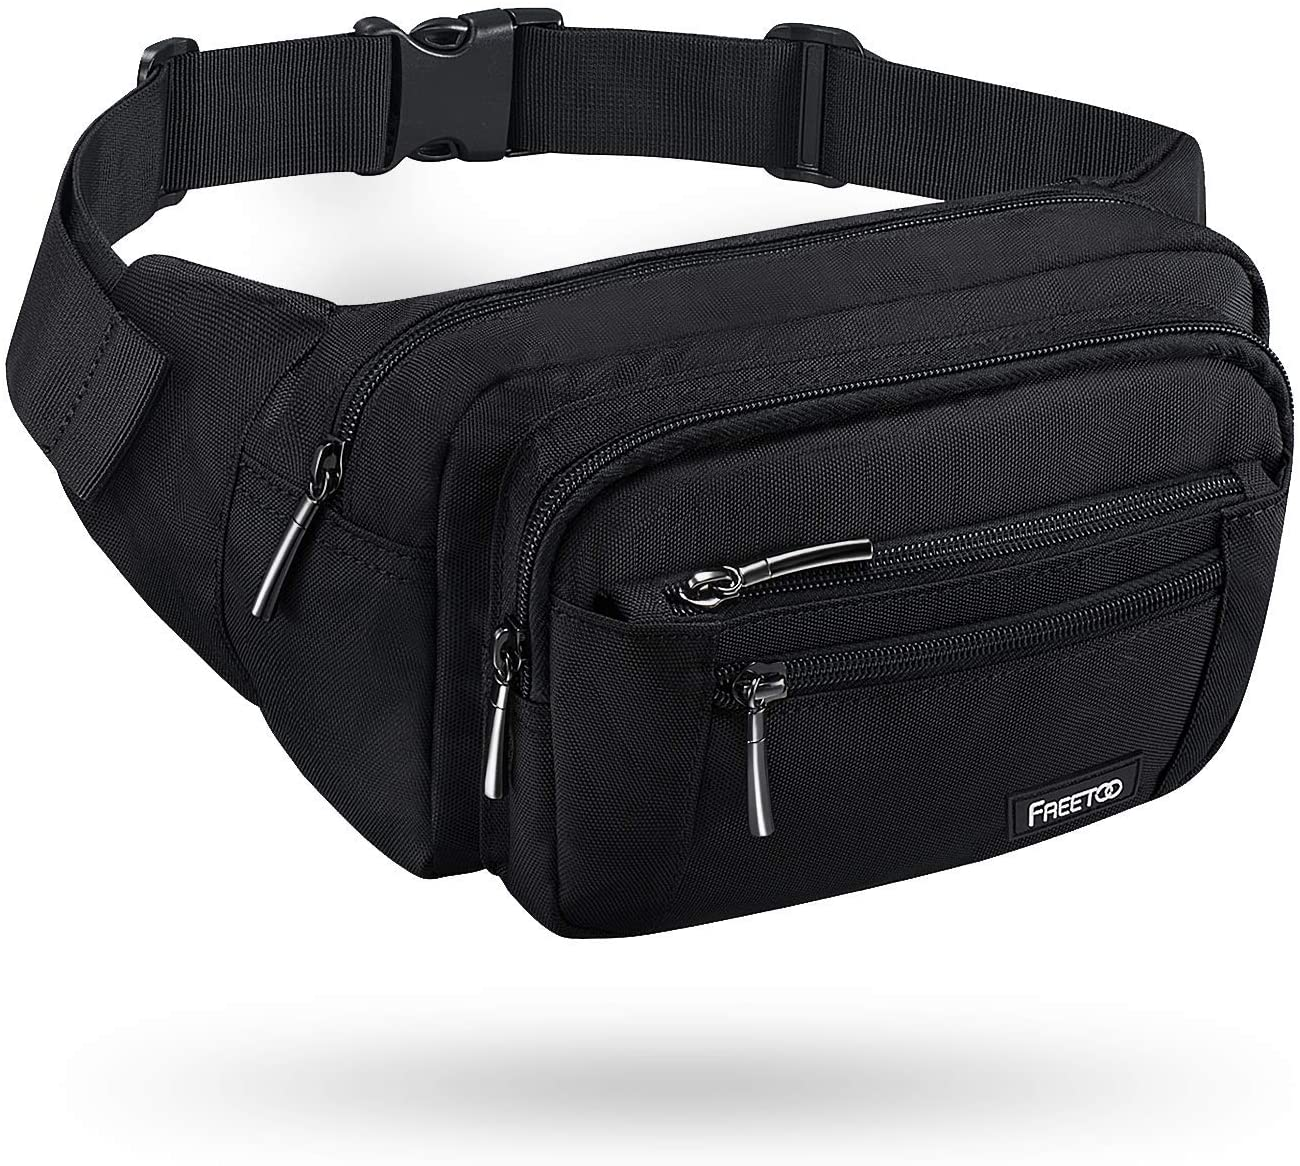 Black Taurus Sport Waist Packs Fanny Pack Adjustable For Hike